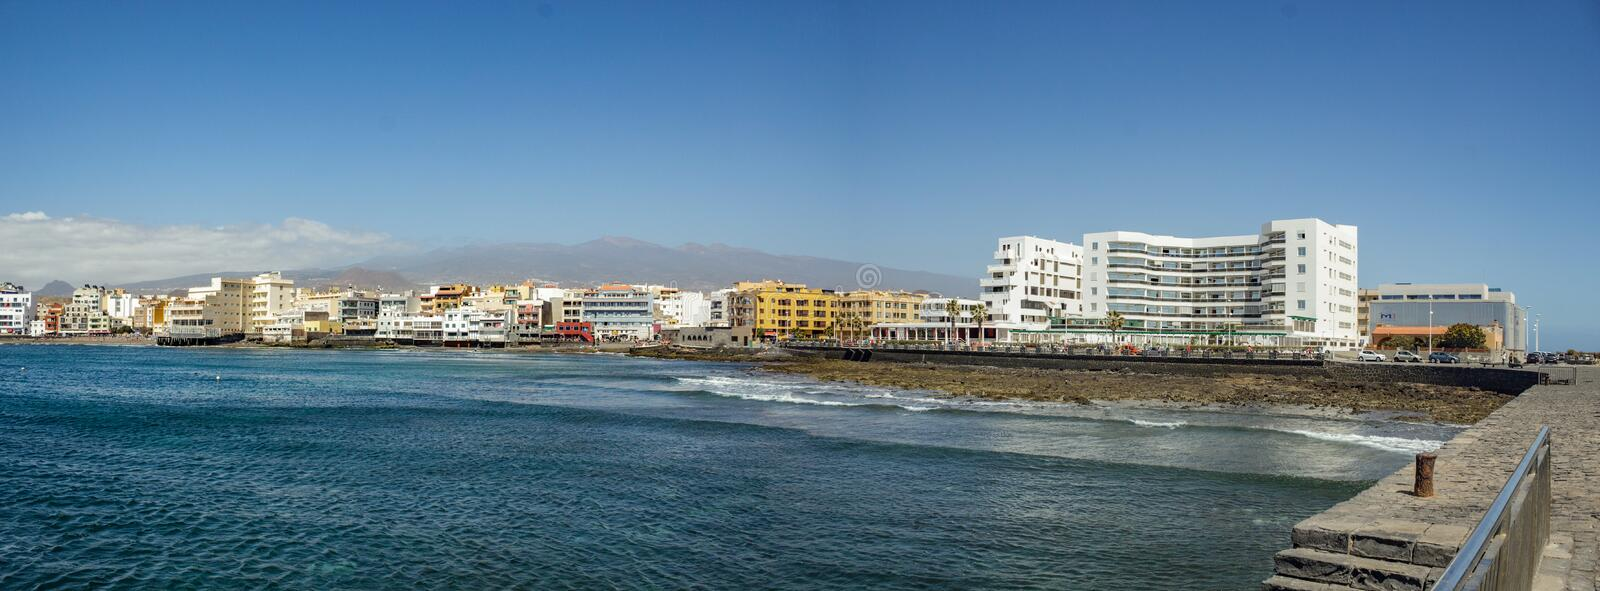 Scenic morning vistas towards El Medano village from the pier with the picturesque buildings and small beach in front, and stock photography